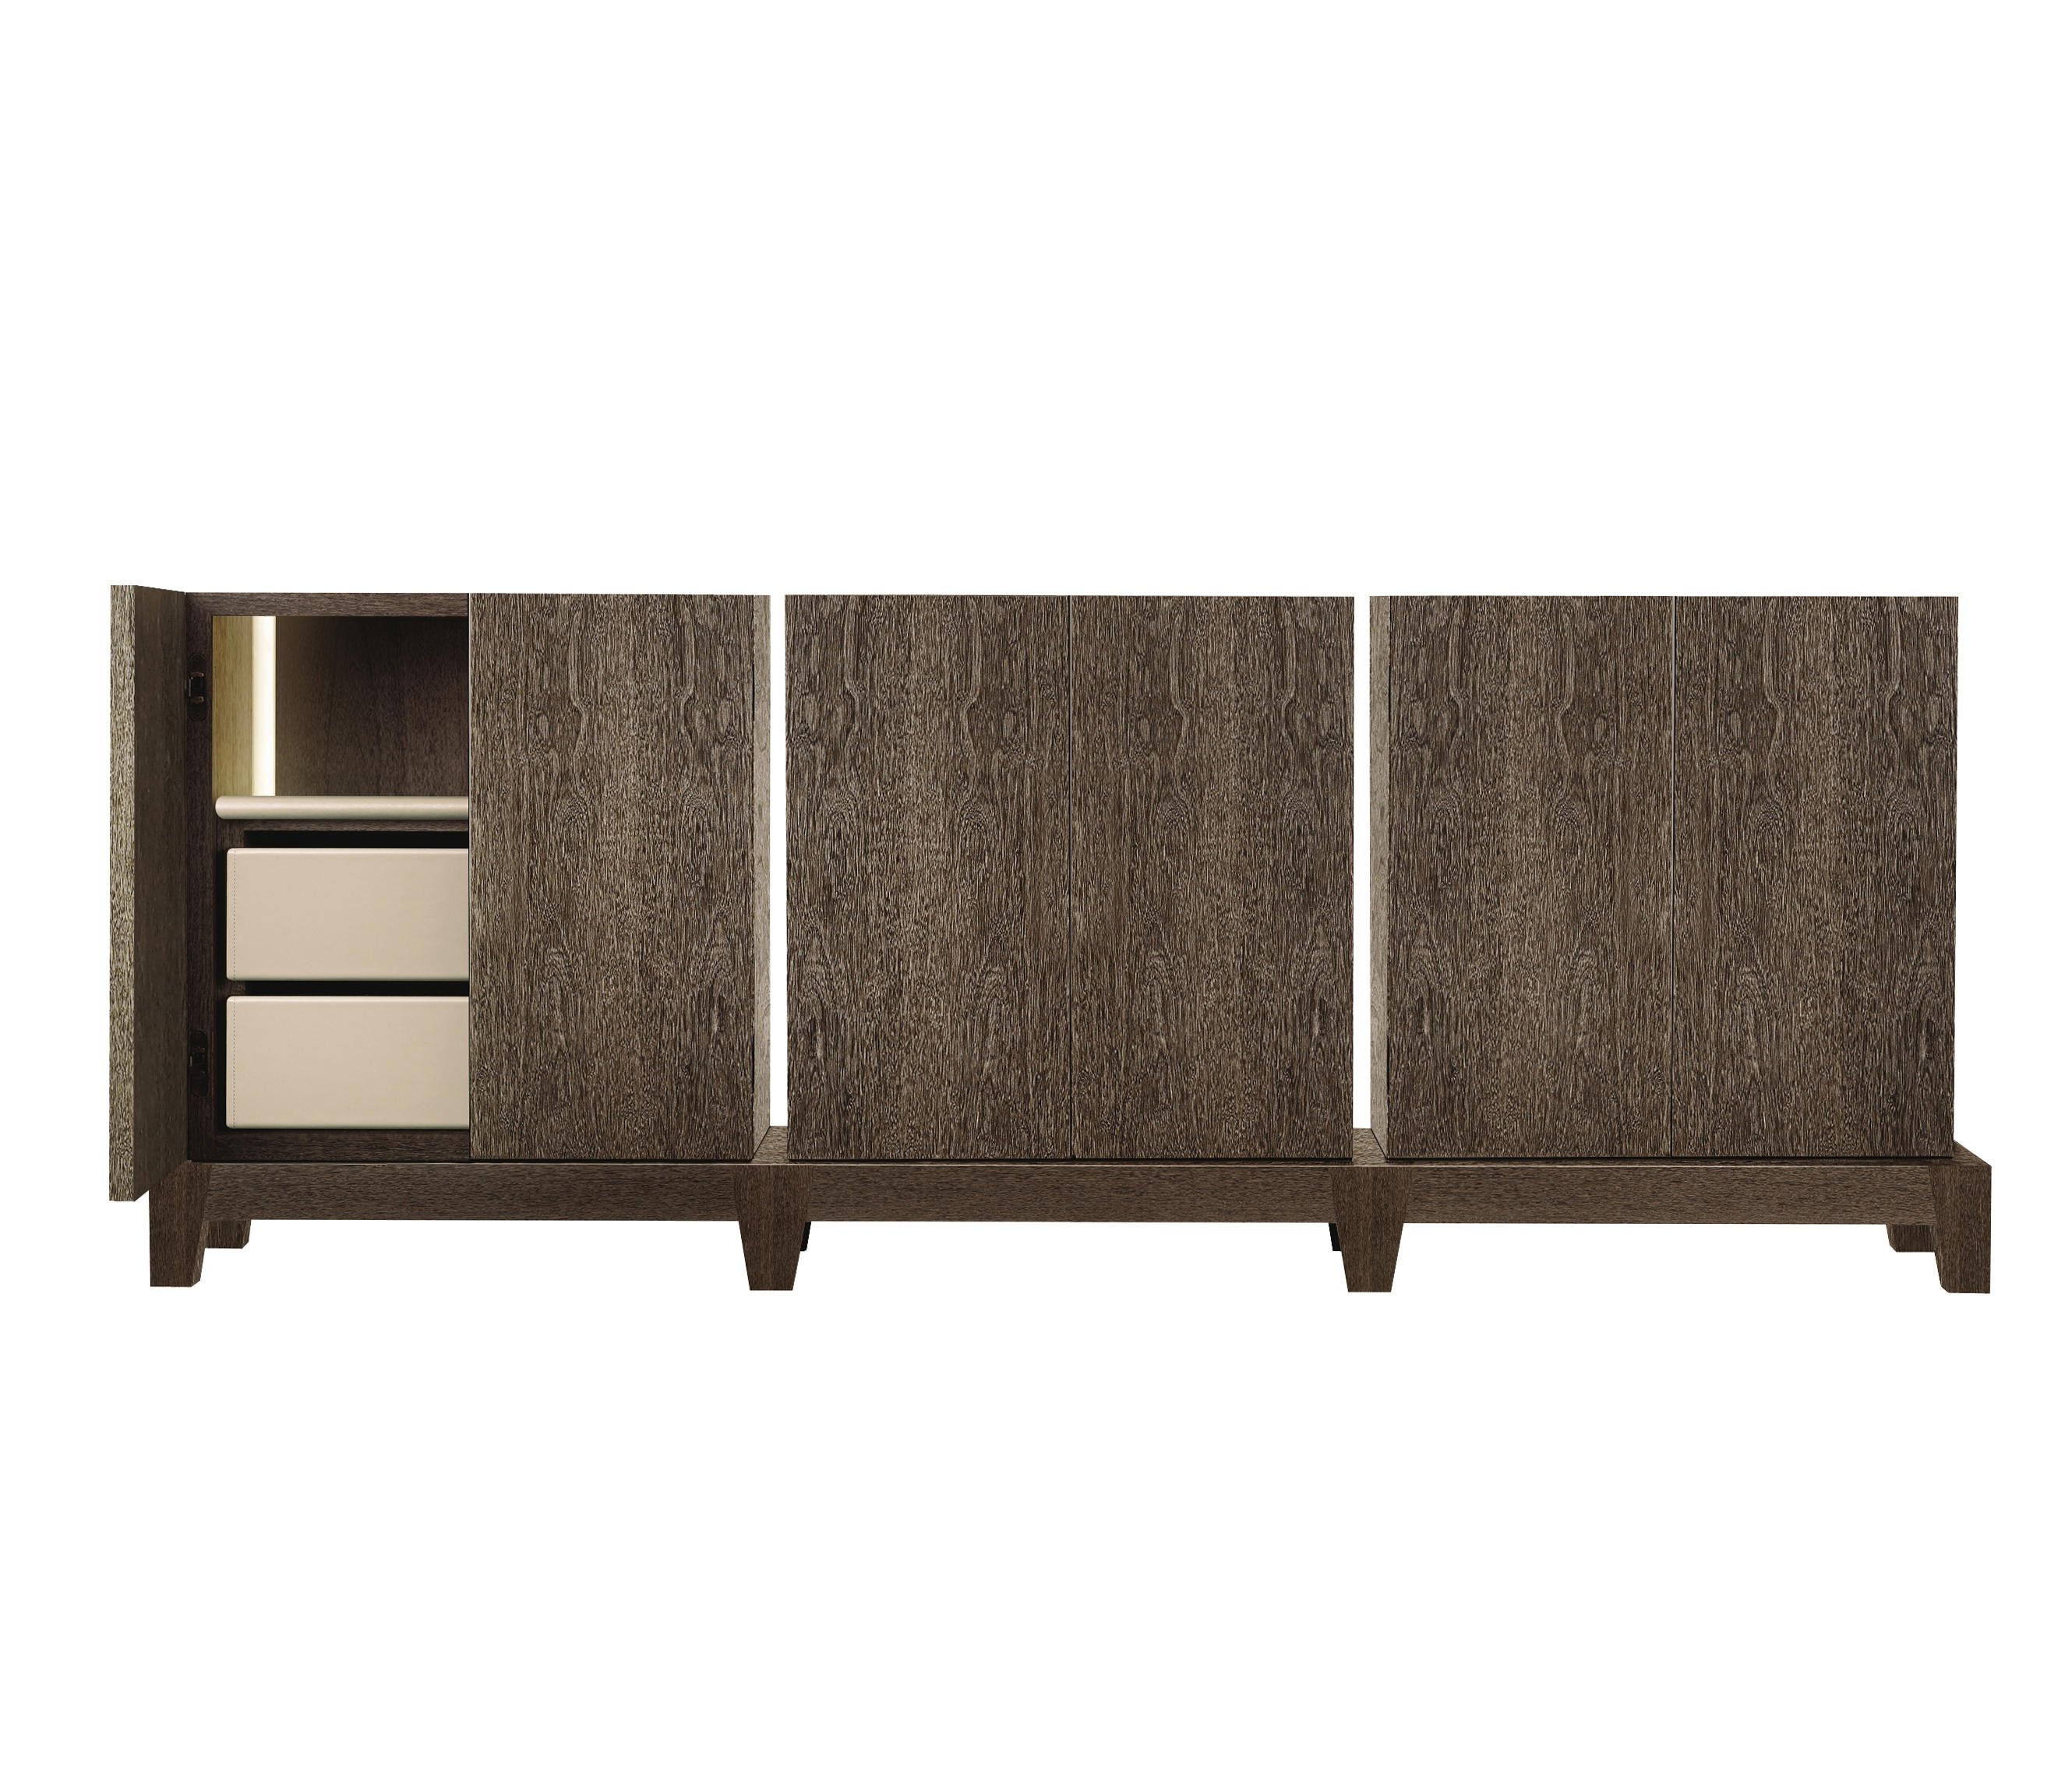 Amarcord Cabinet – Sideboards From Promemoria | Architonic With Iron Sideboards (View 2 of 30)